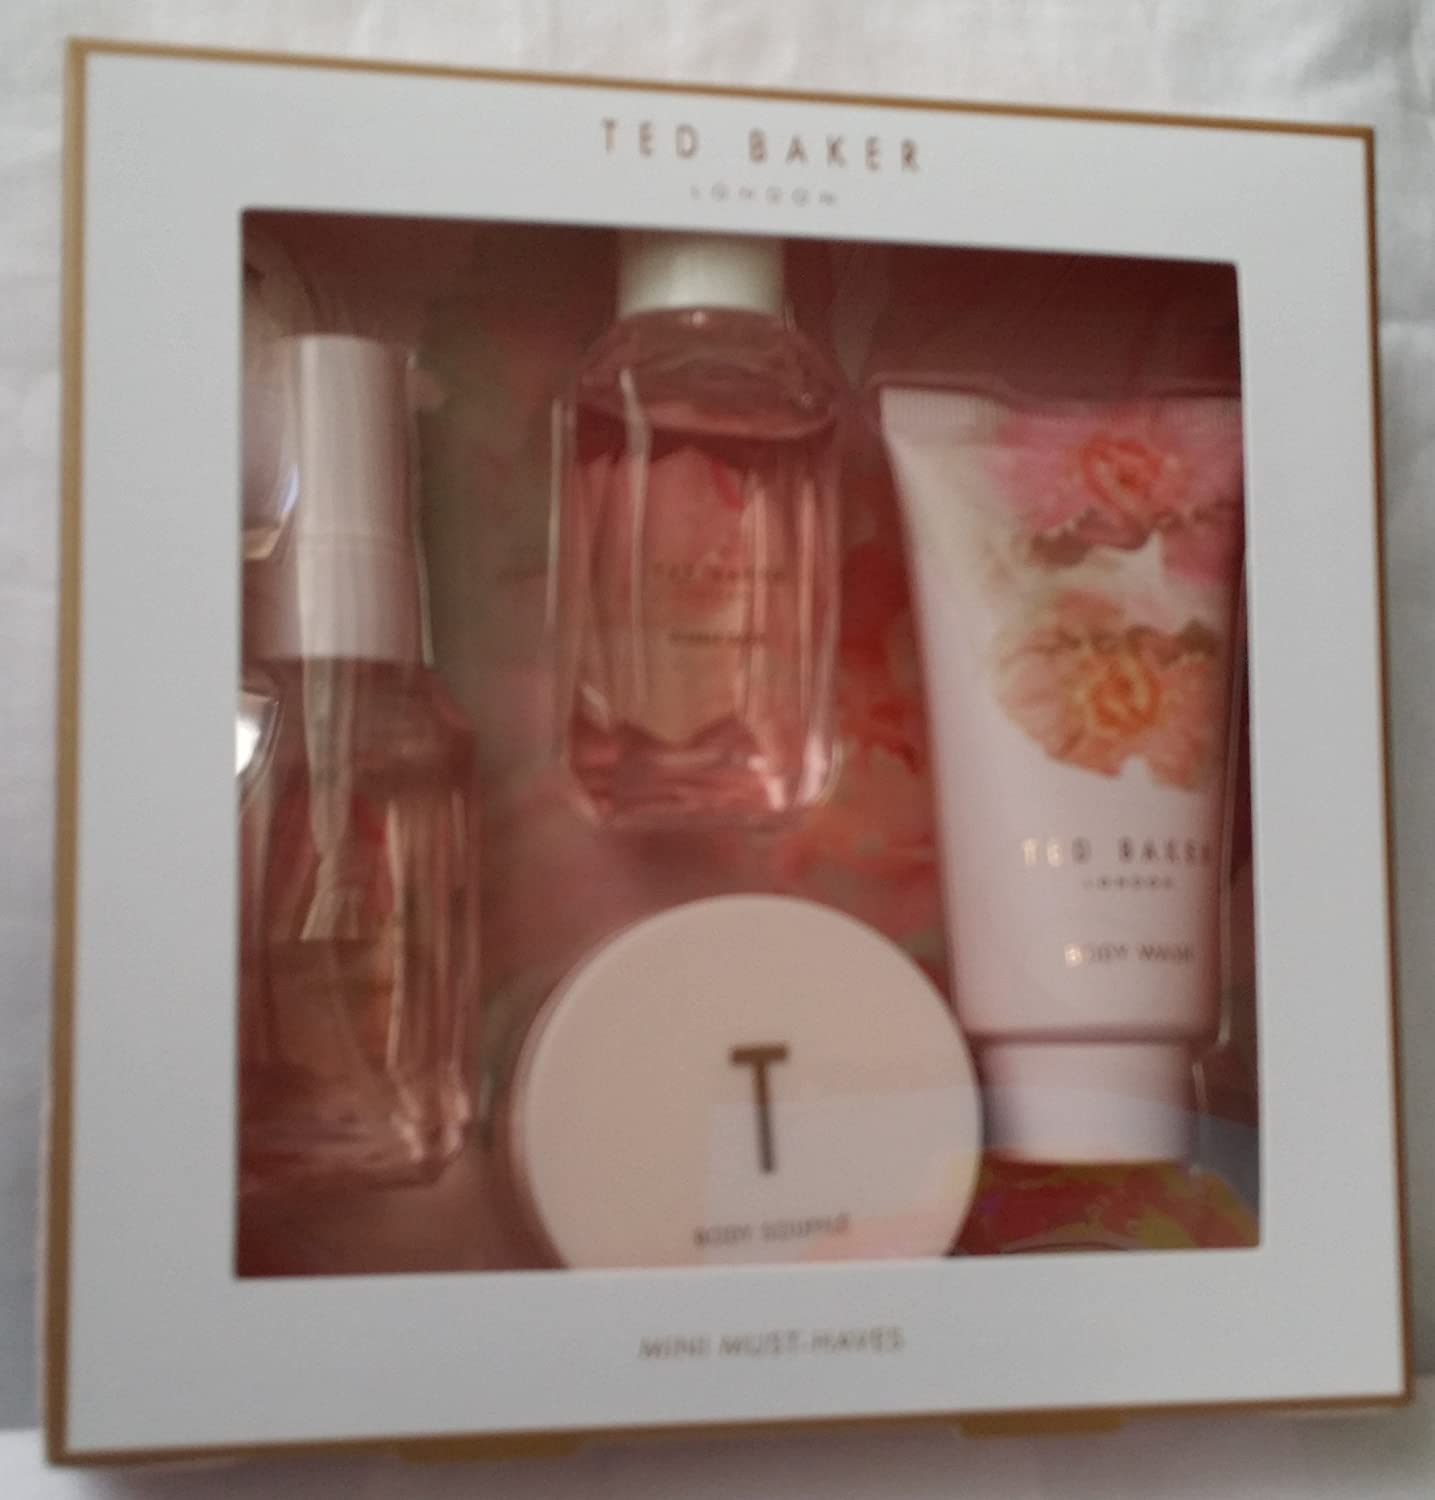 *NEW* Ted Baker Mini Must Haves Body Spray Souffle Wash Gift Set